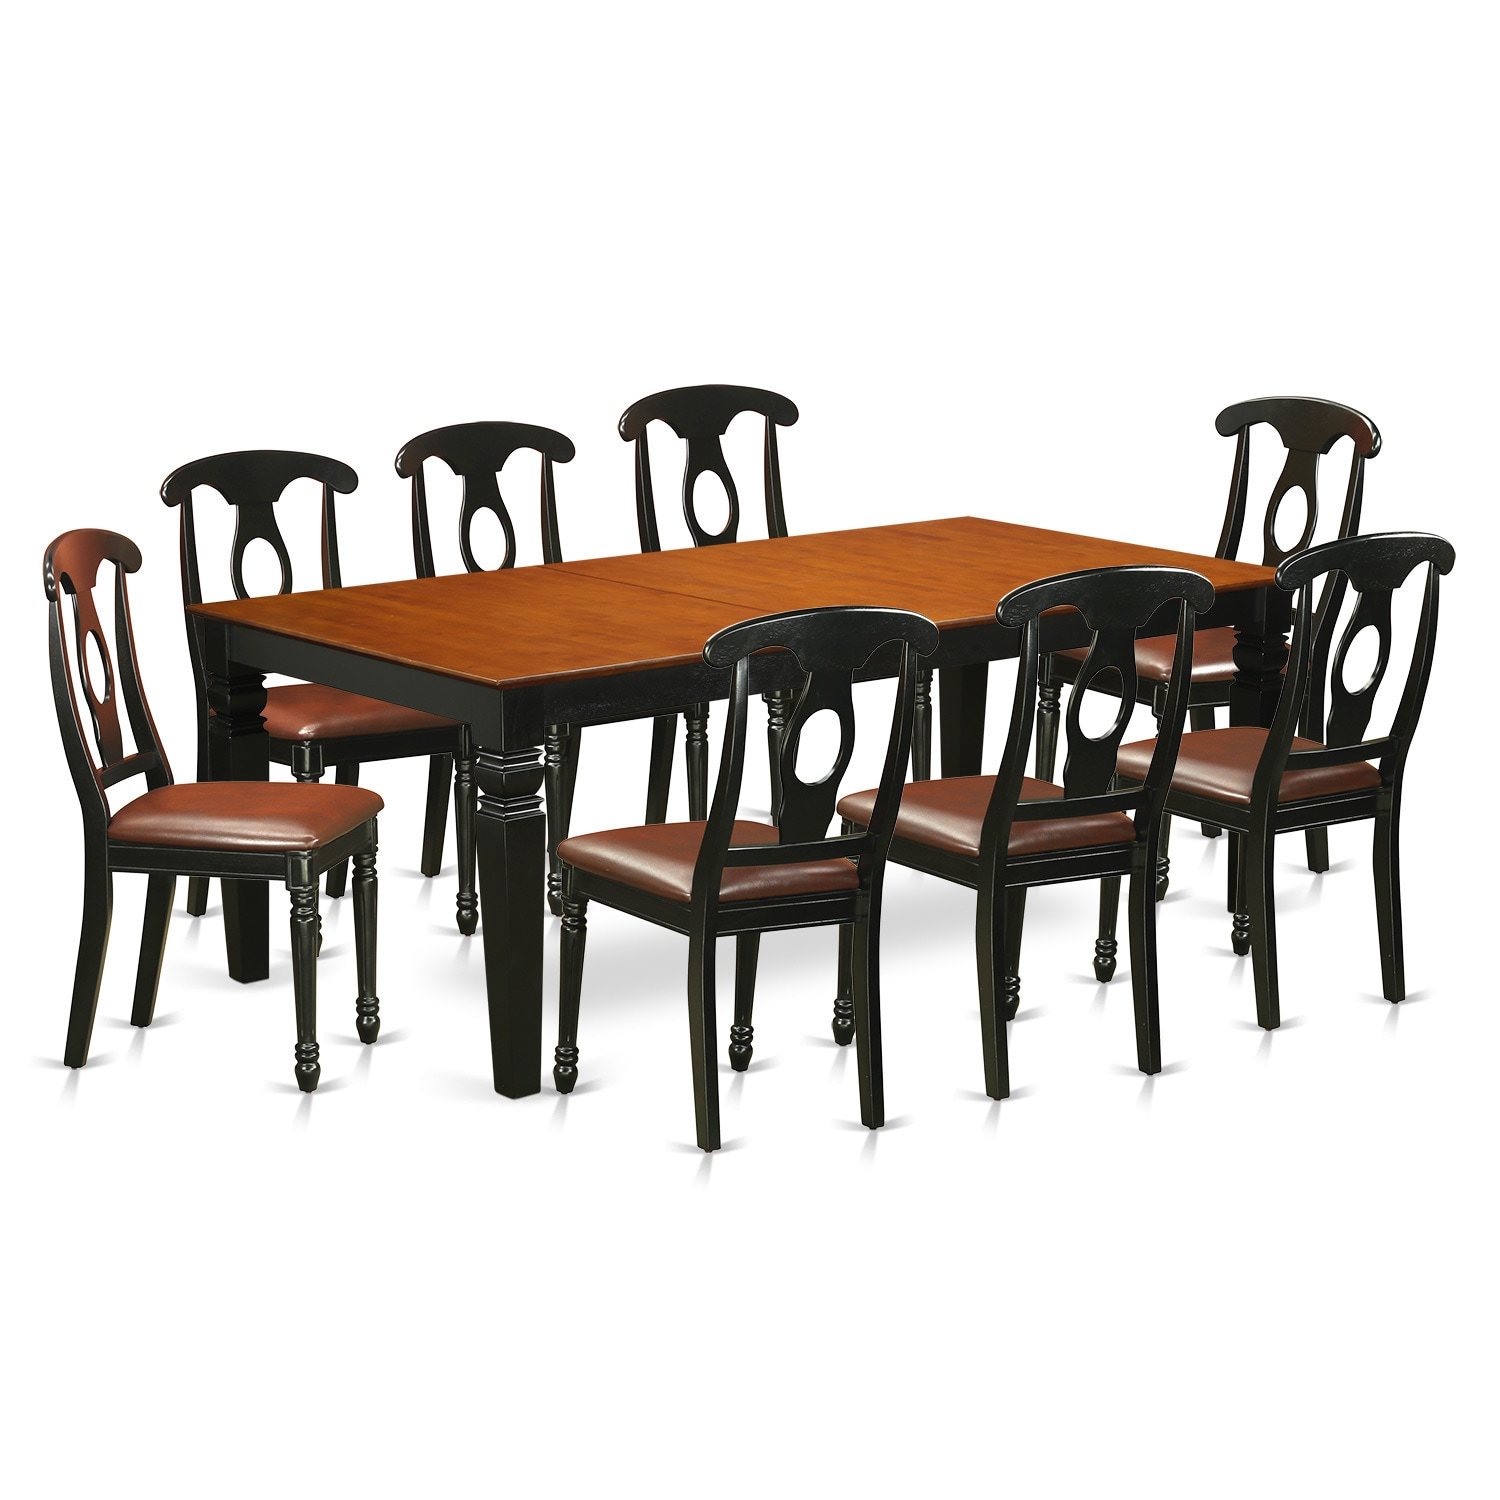 LGKE9 BCH 9 Piece Table And Chair Set